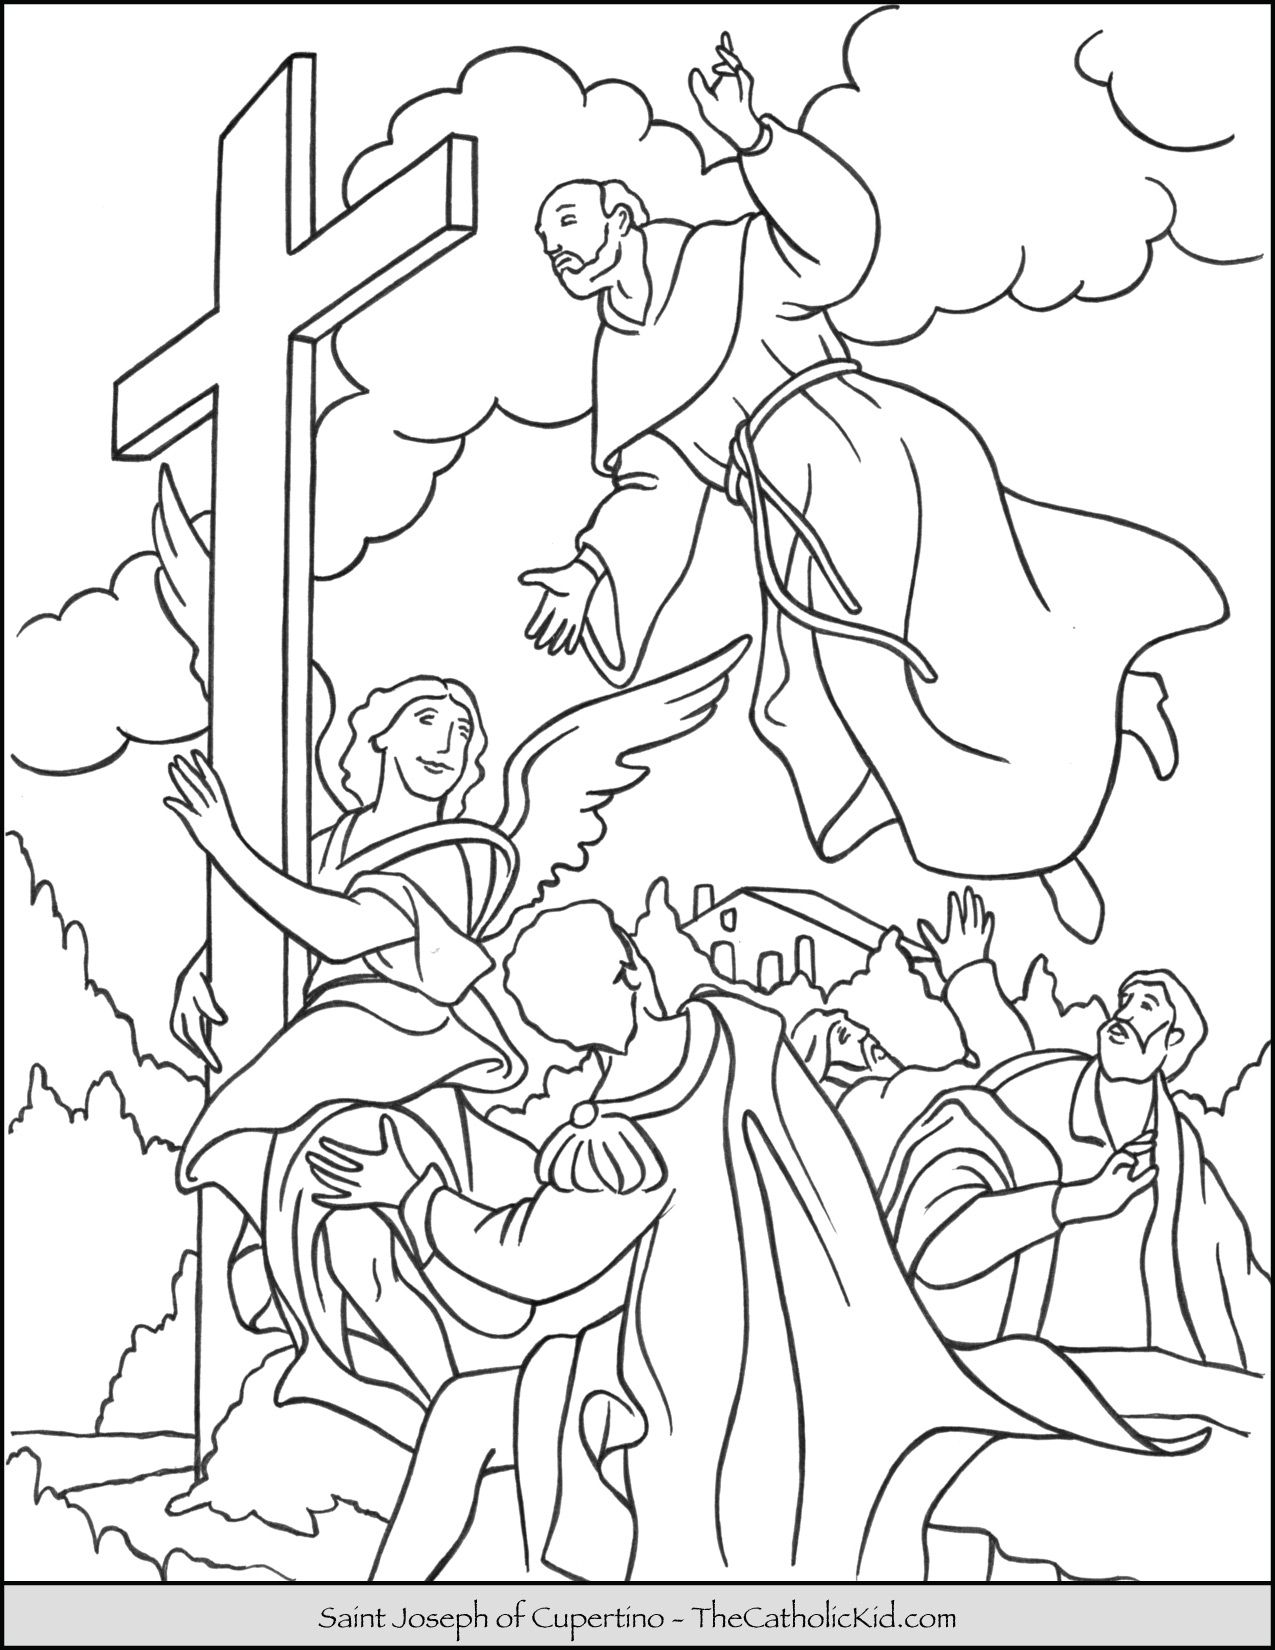 Saint Joseph Of Cupertino Coloring Page Thecatholickid Com St